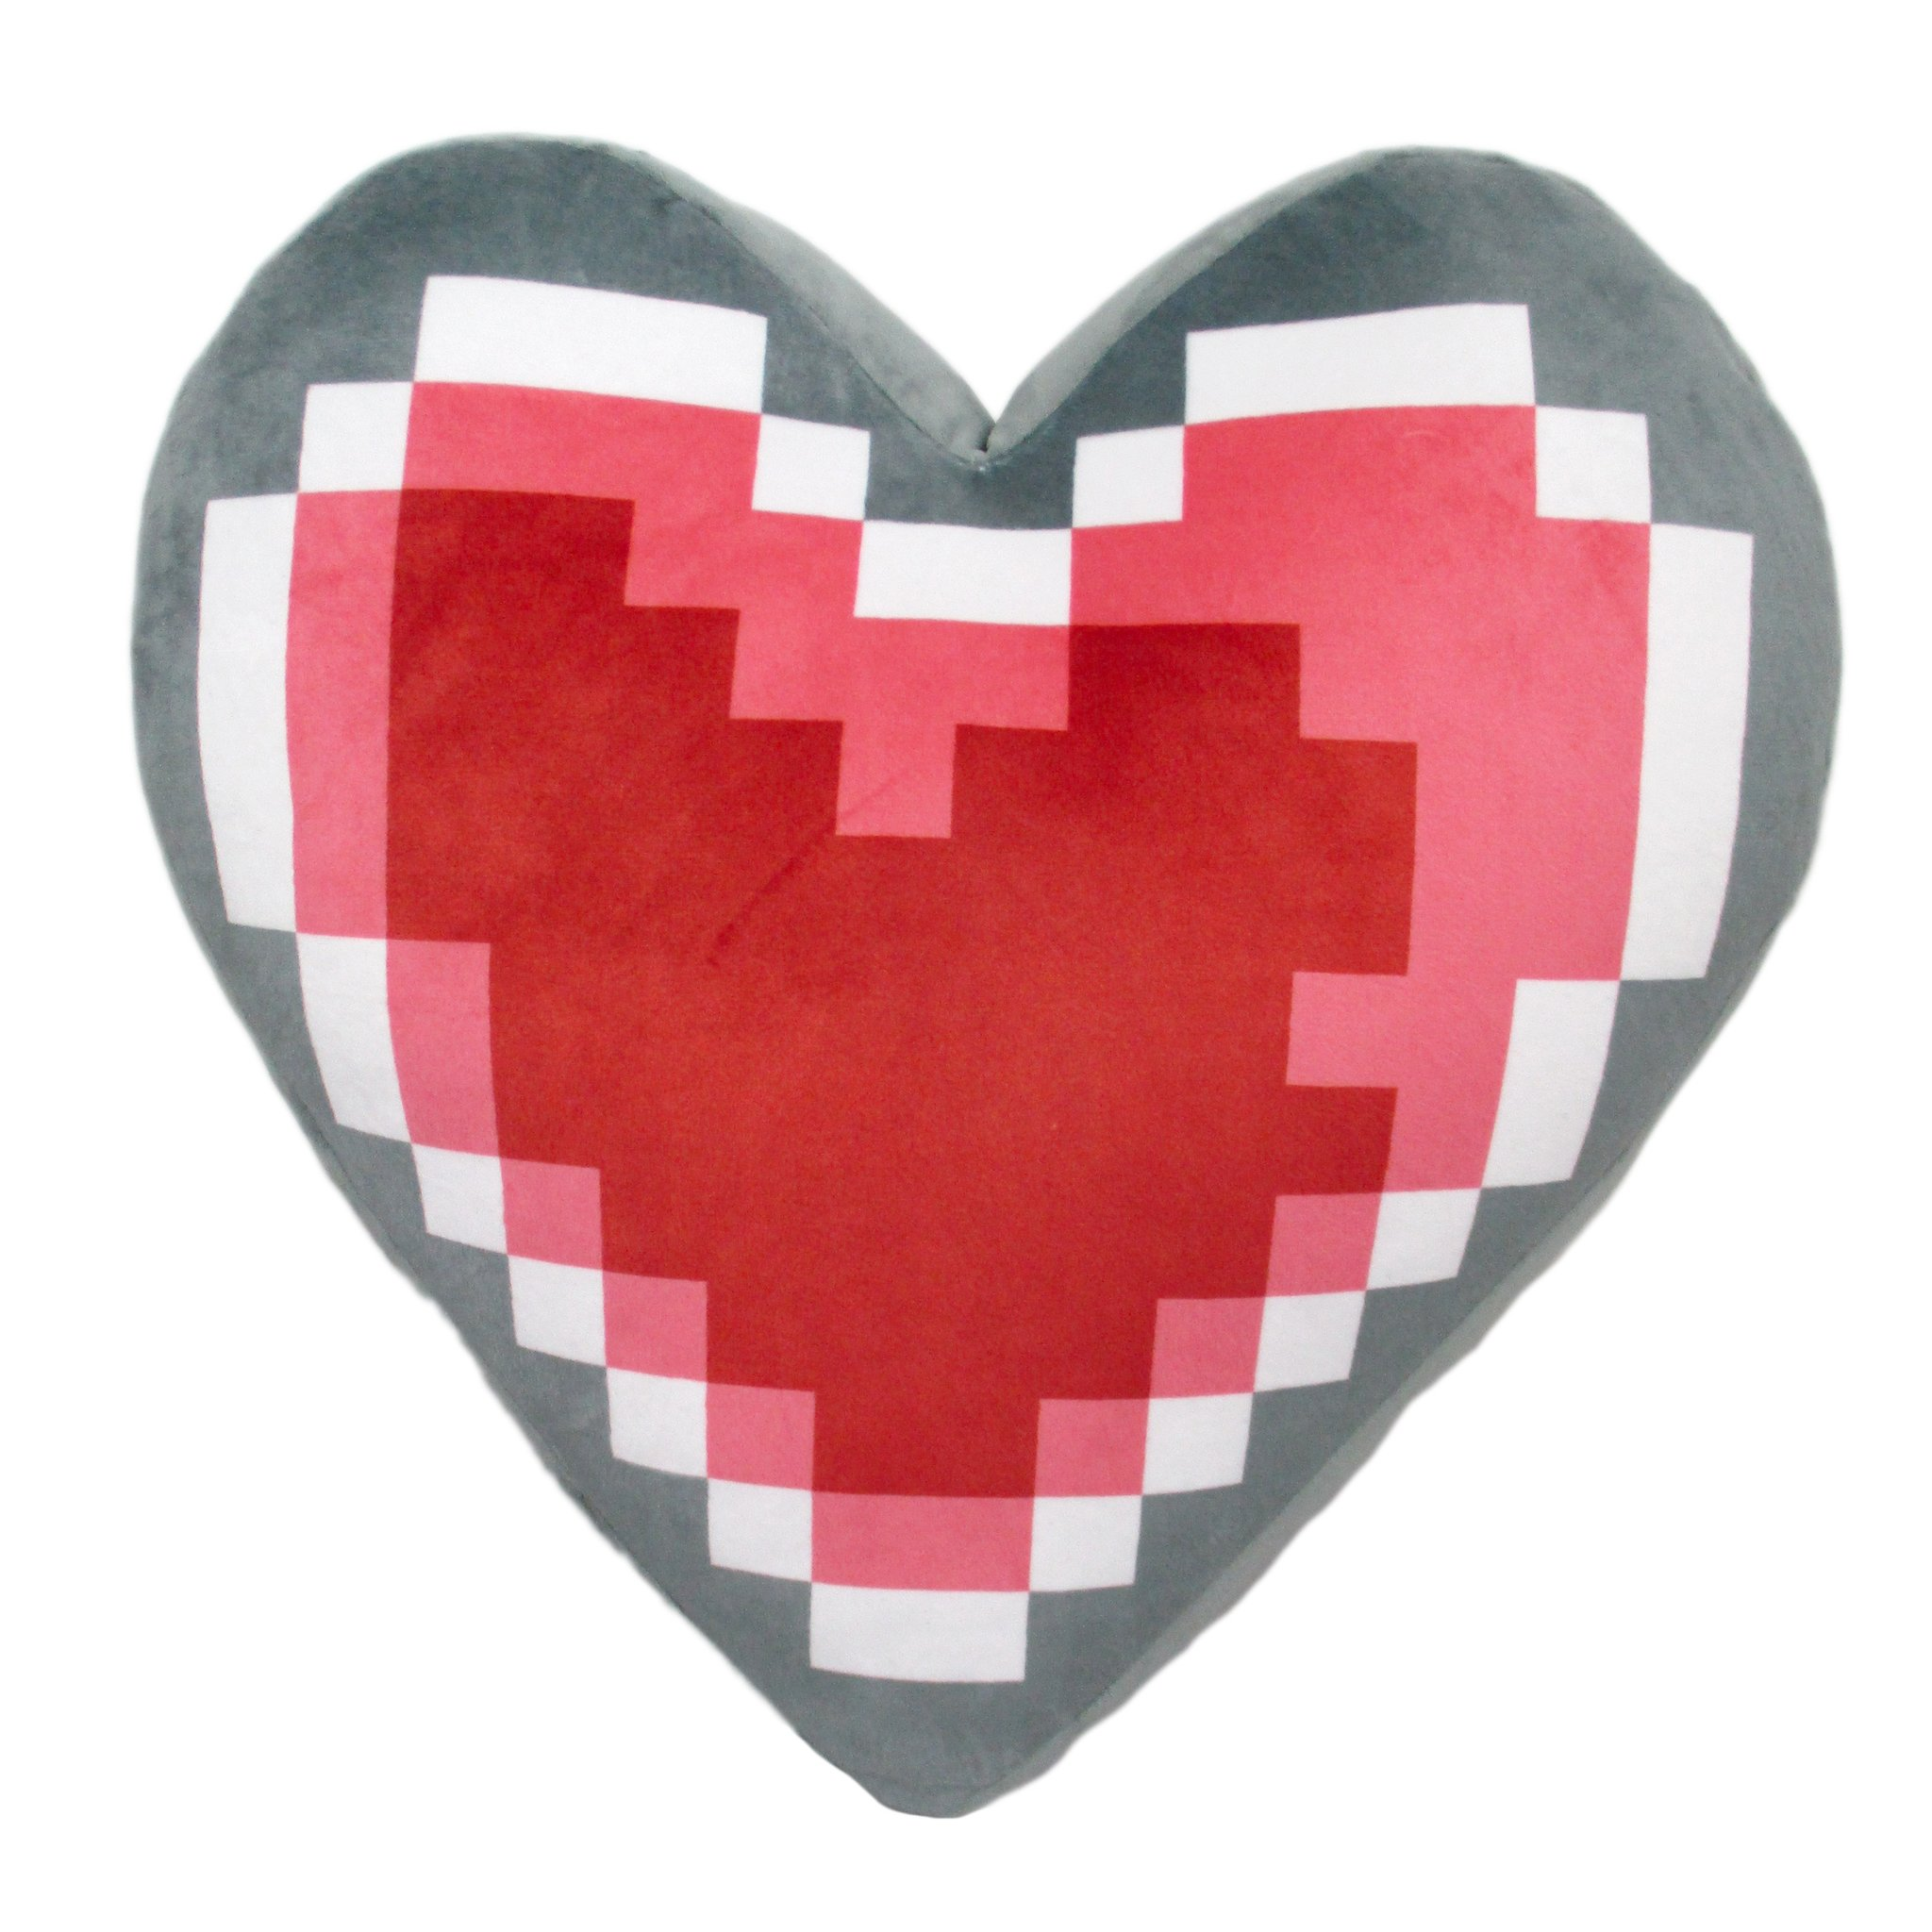 heart-container-zelda-plush-cushion (1)